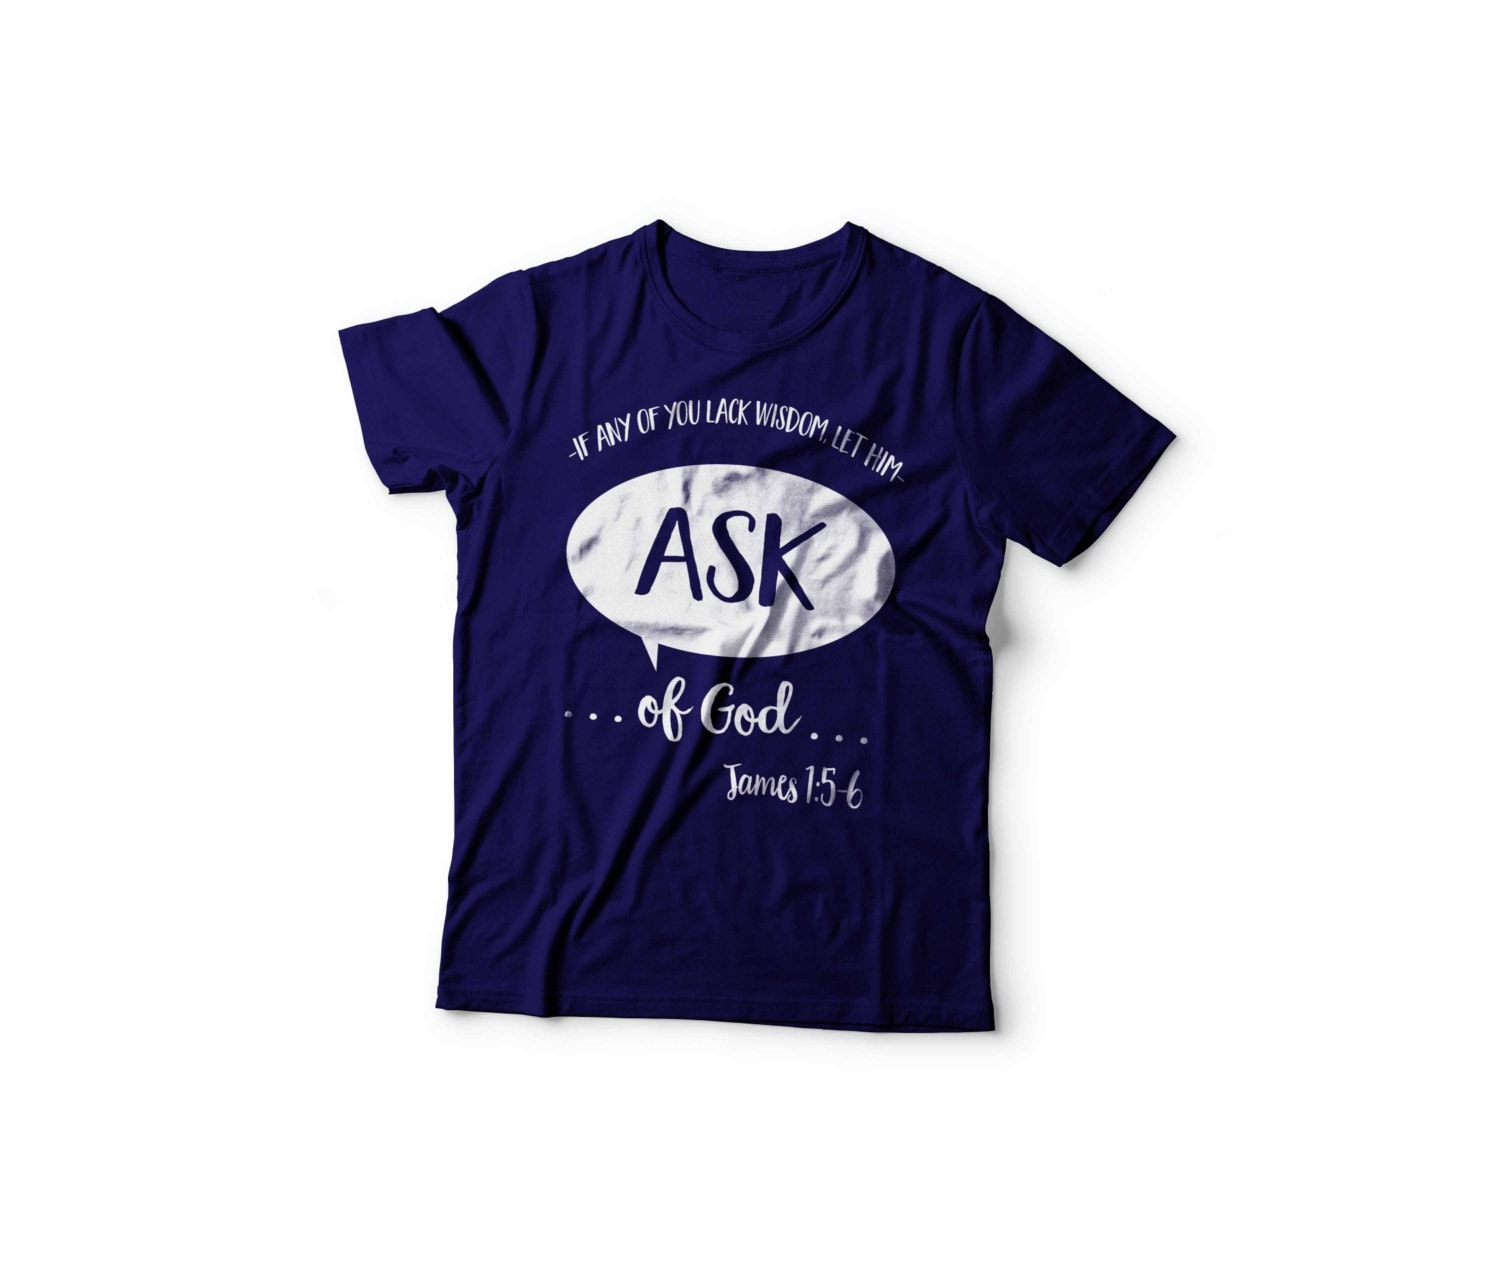 Design your own t shirt digital printing - 2017 Mutual Theme Digital T Shirt Design Ask Of God Ask In Faith Girls Camp Lds Young Womens Print Your Own T Shirts